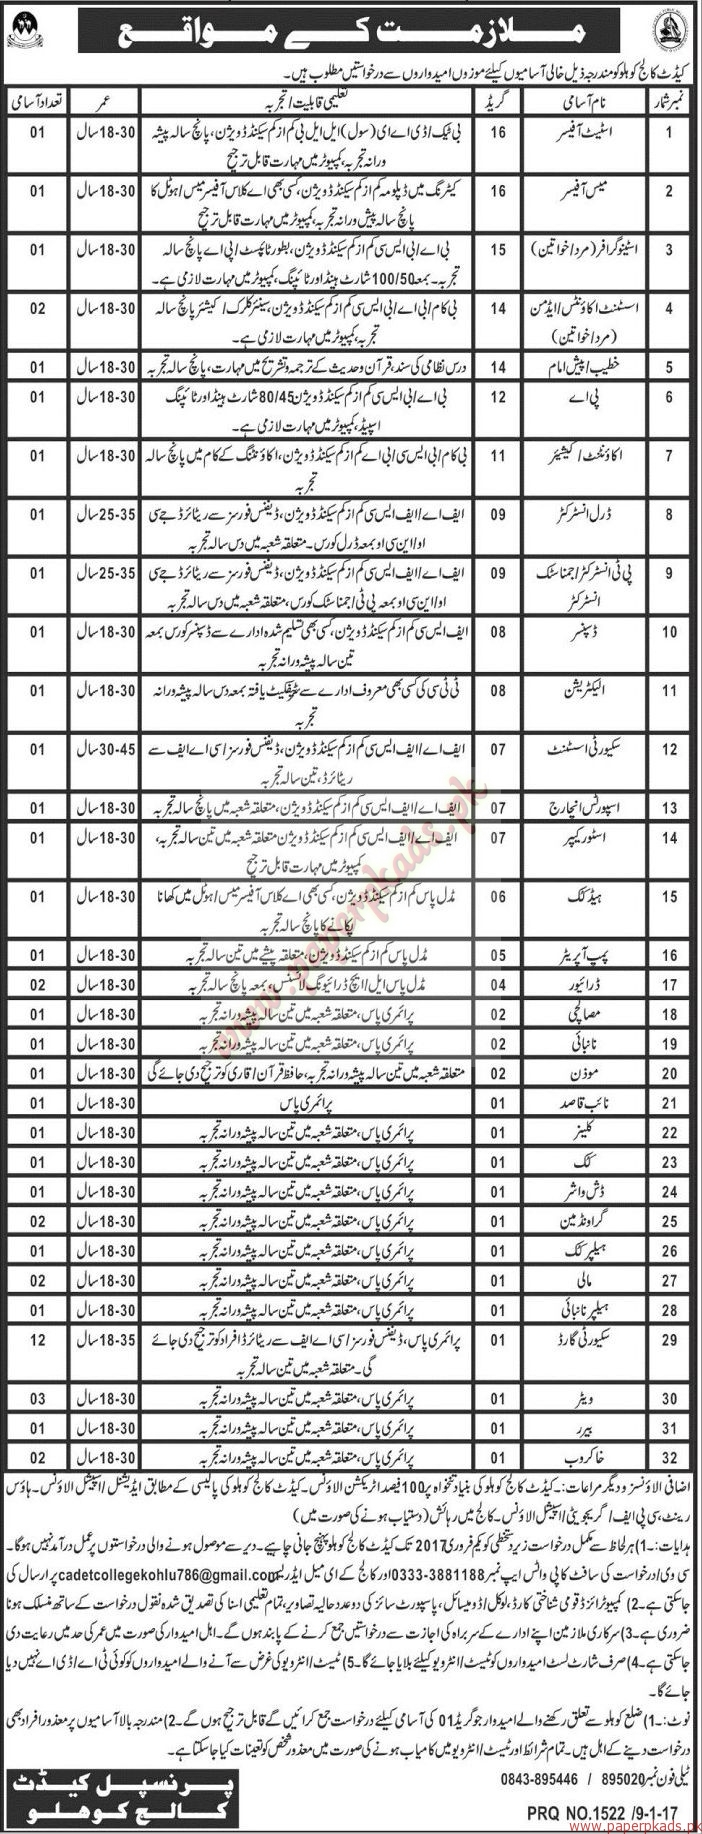 Assistant Officers Mess Waiters Assistant Accounts Admin Stenographers Accountant and Other Jobs